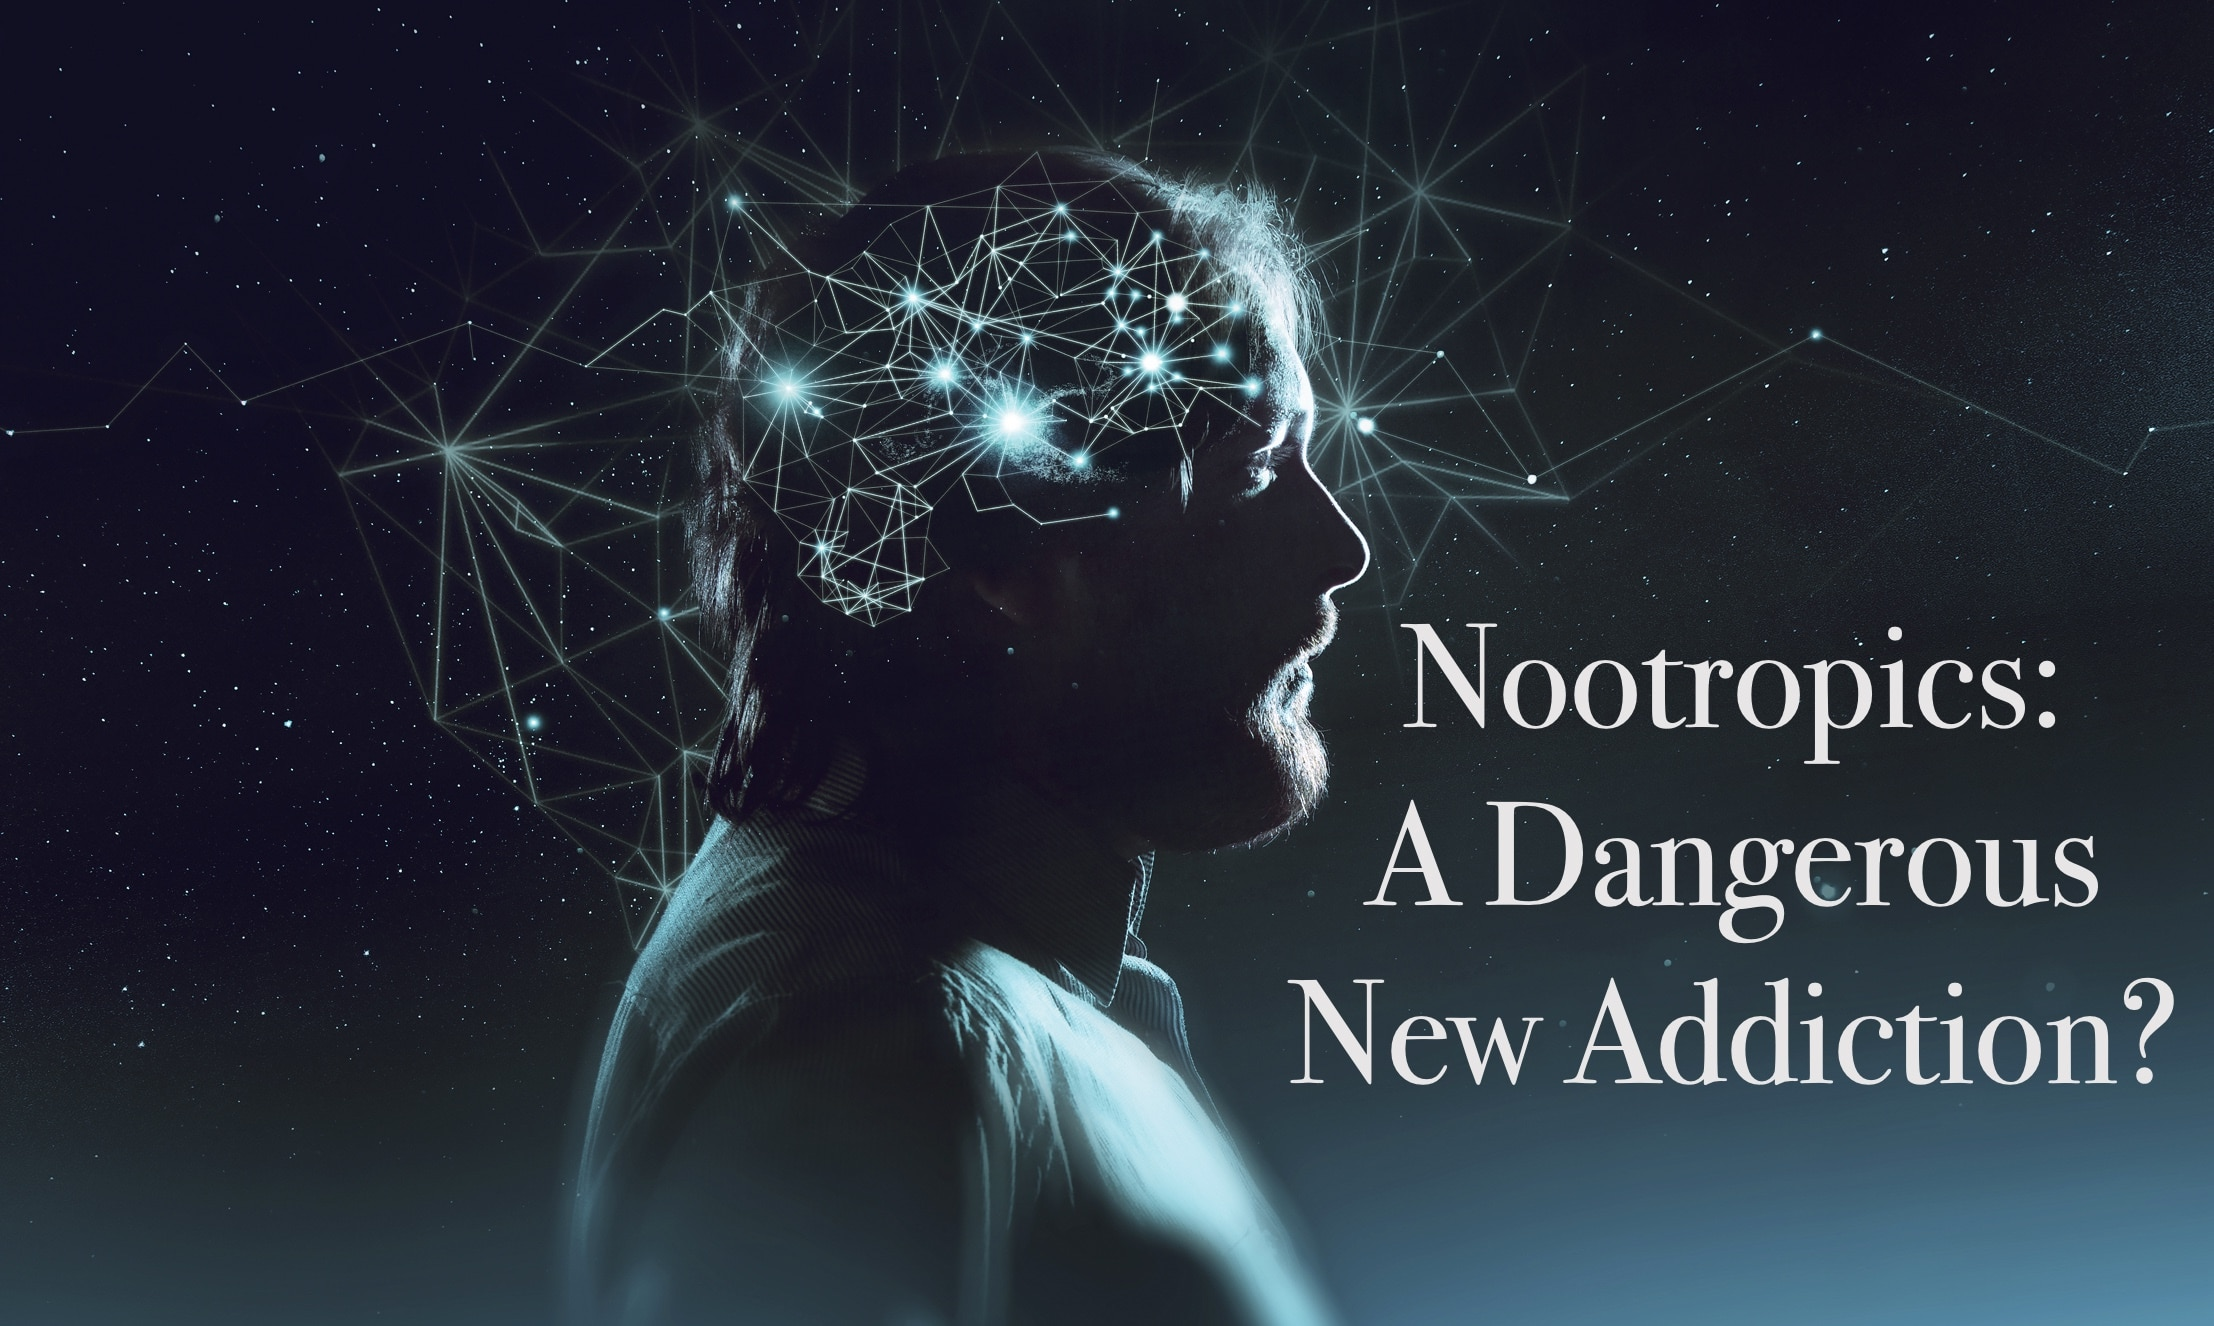 nootropics-a-dangerous-new-addiction-smart-drugs-cognitive-enhancers